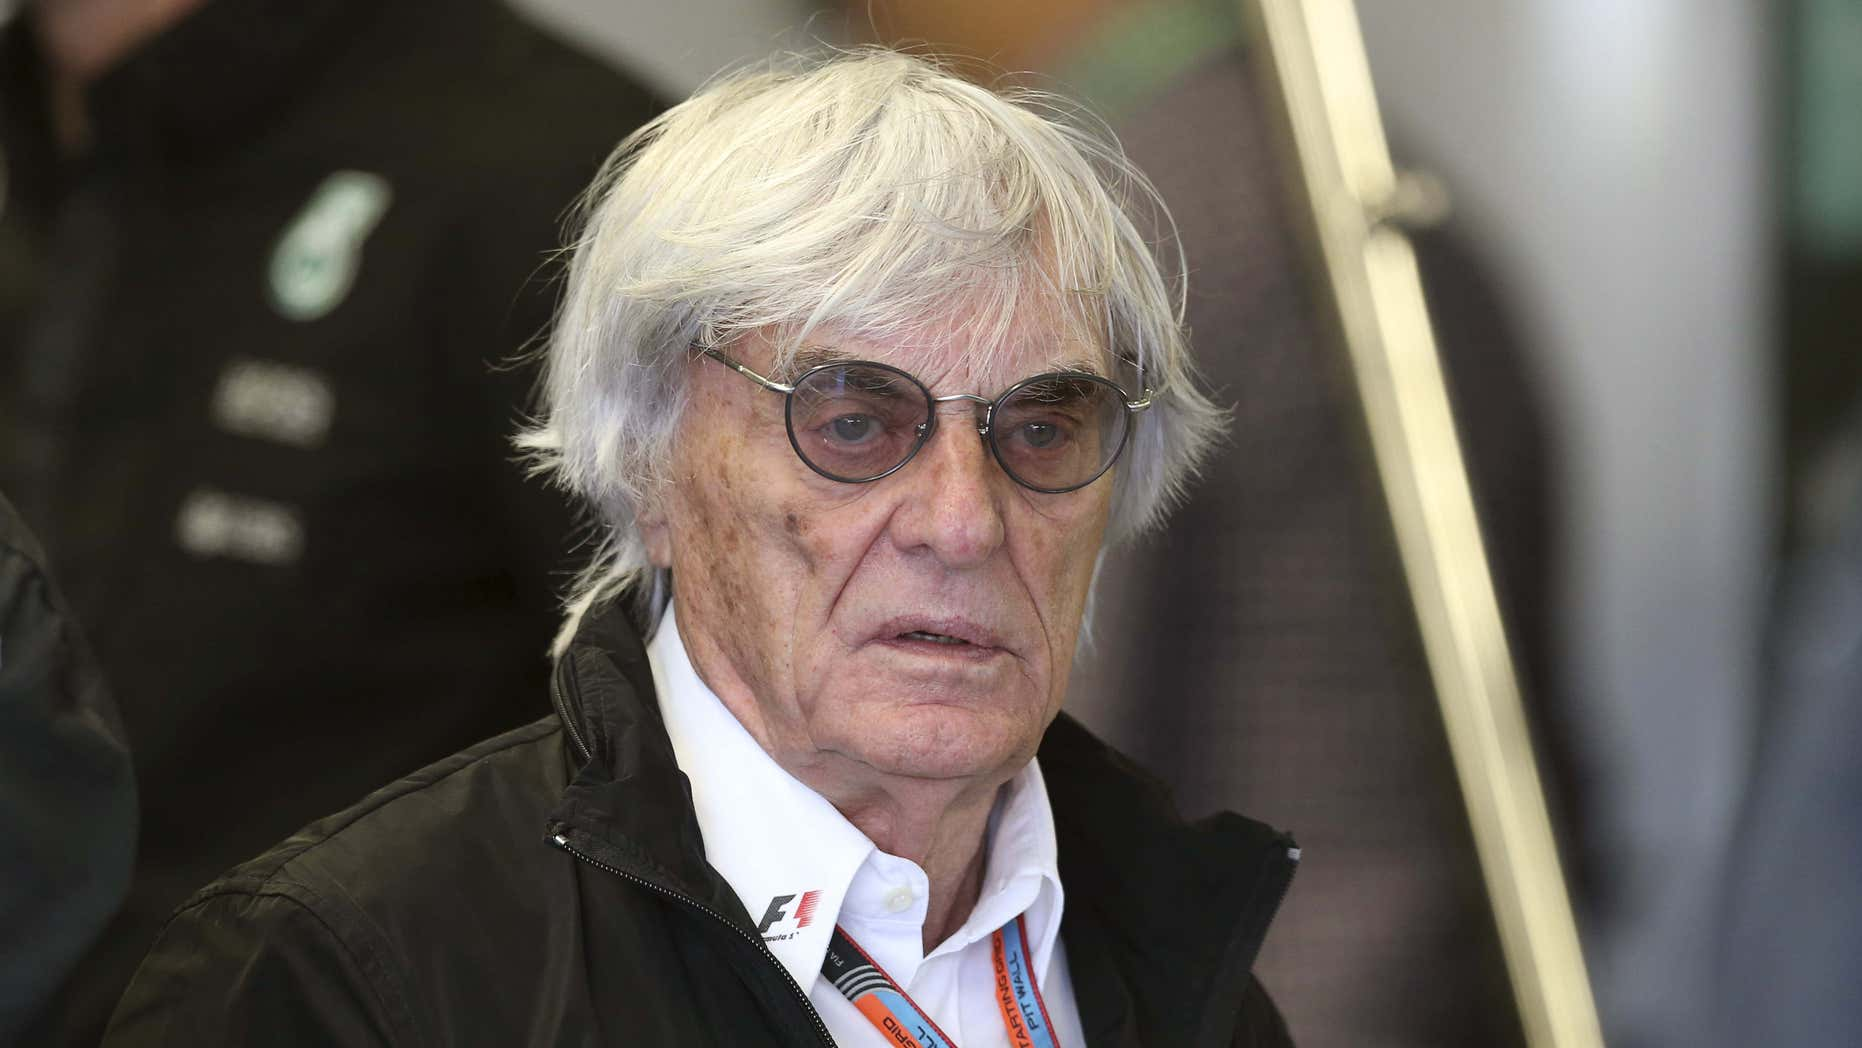 June 16, 2015: Formula One supremo Bernie Ecclestone walks in the Mercedes team garage during the third practice session of the Canadian F1 Grand Prix at the Circuit Gilles Villeneuve in Montreal.